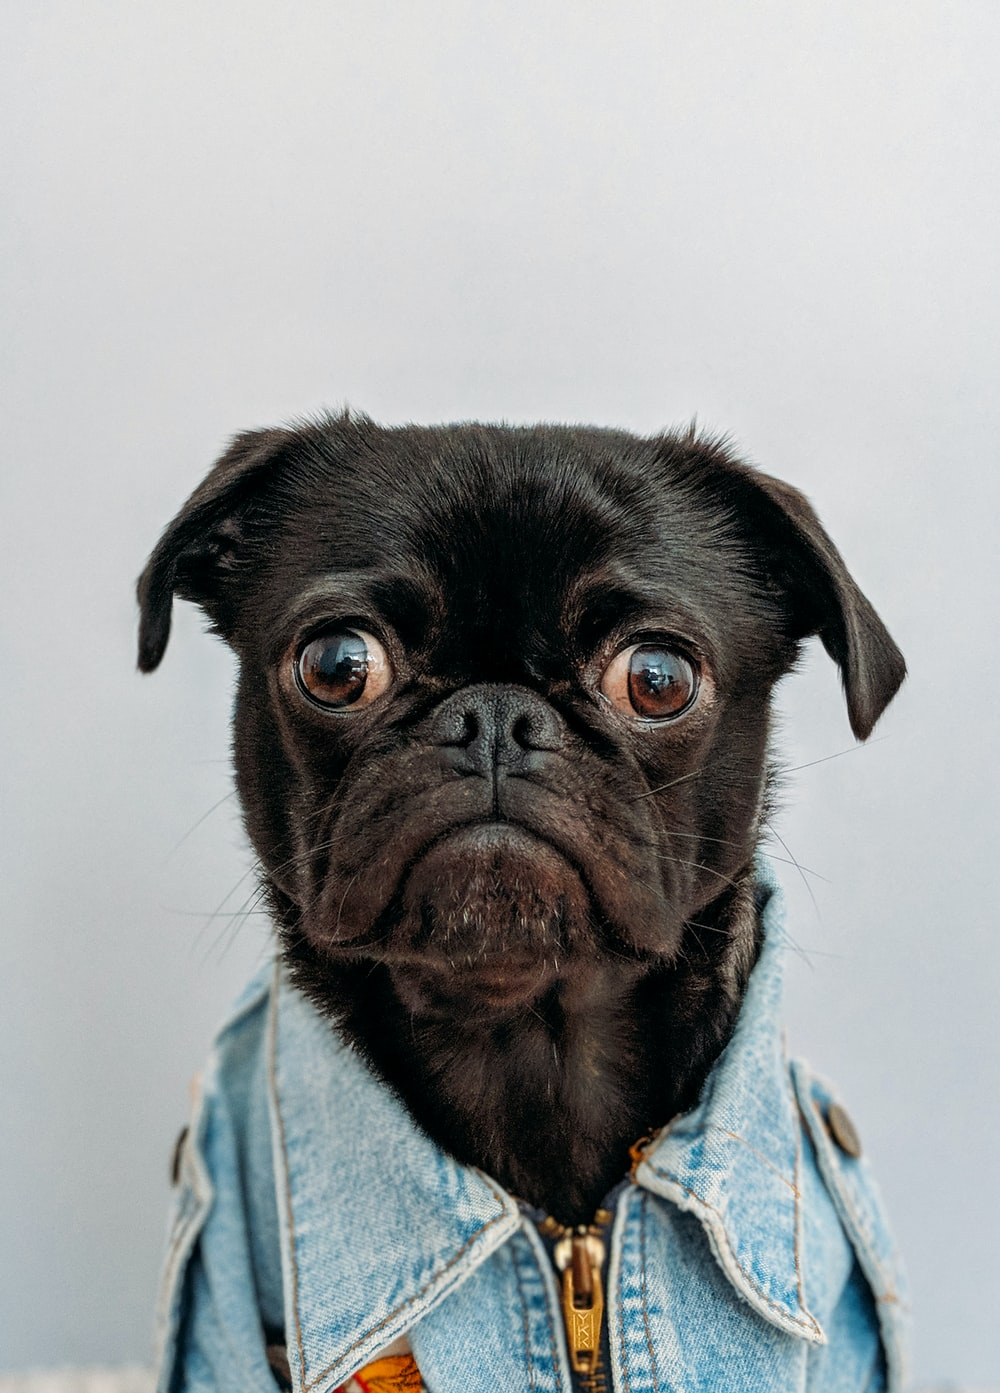 black dog wearing blue denim collar